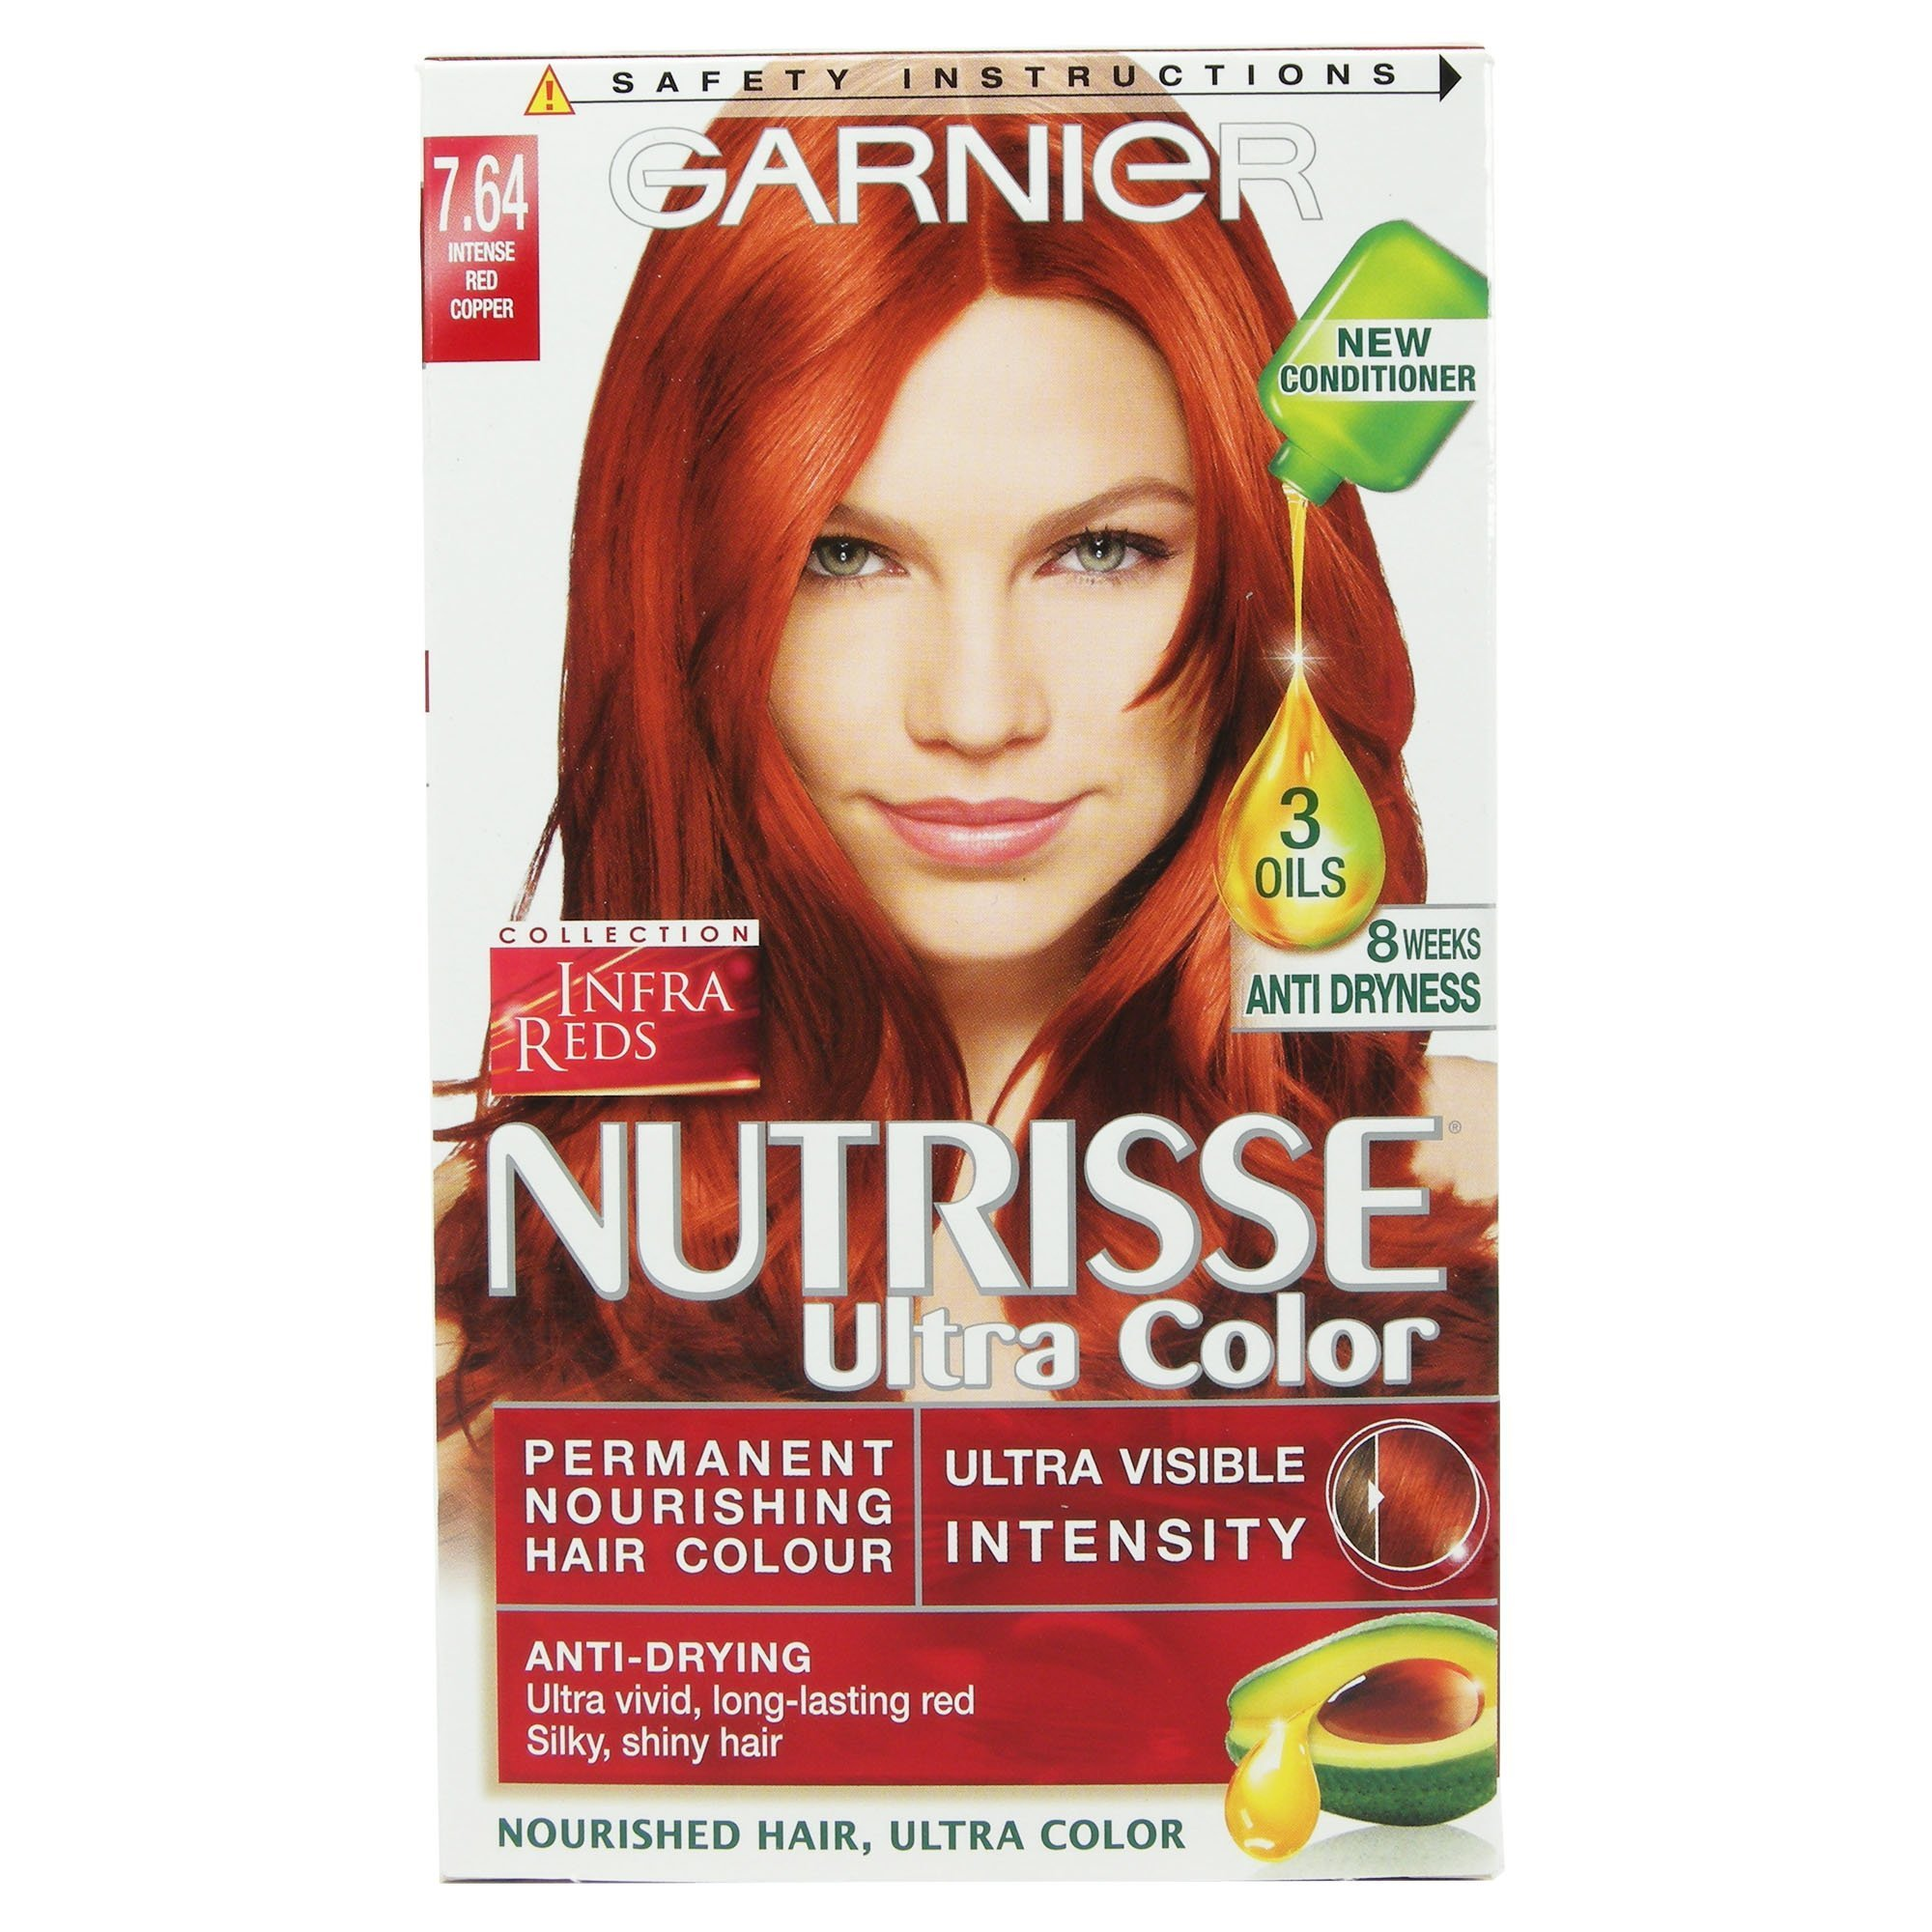 New Garnier Nutrisse Ultra Color 7 64 Intense Copper Red Ebay Ideas With Pictures